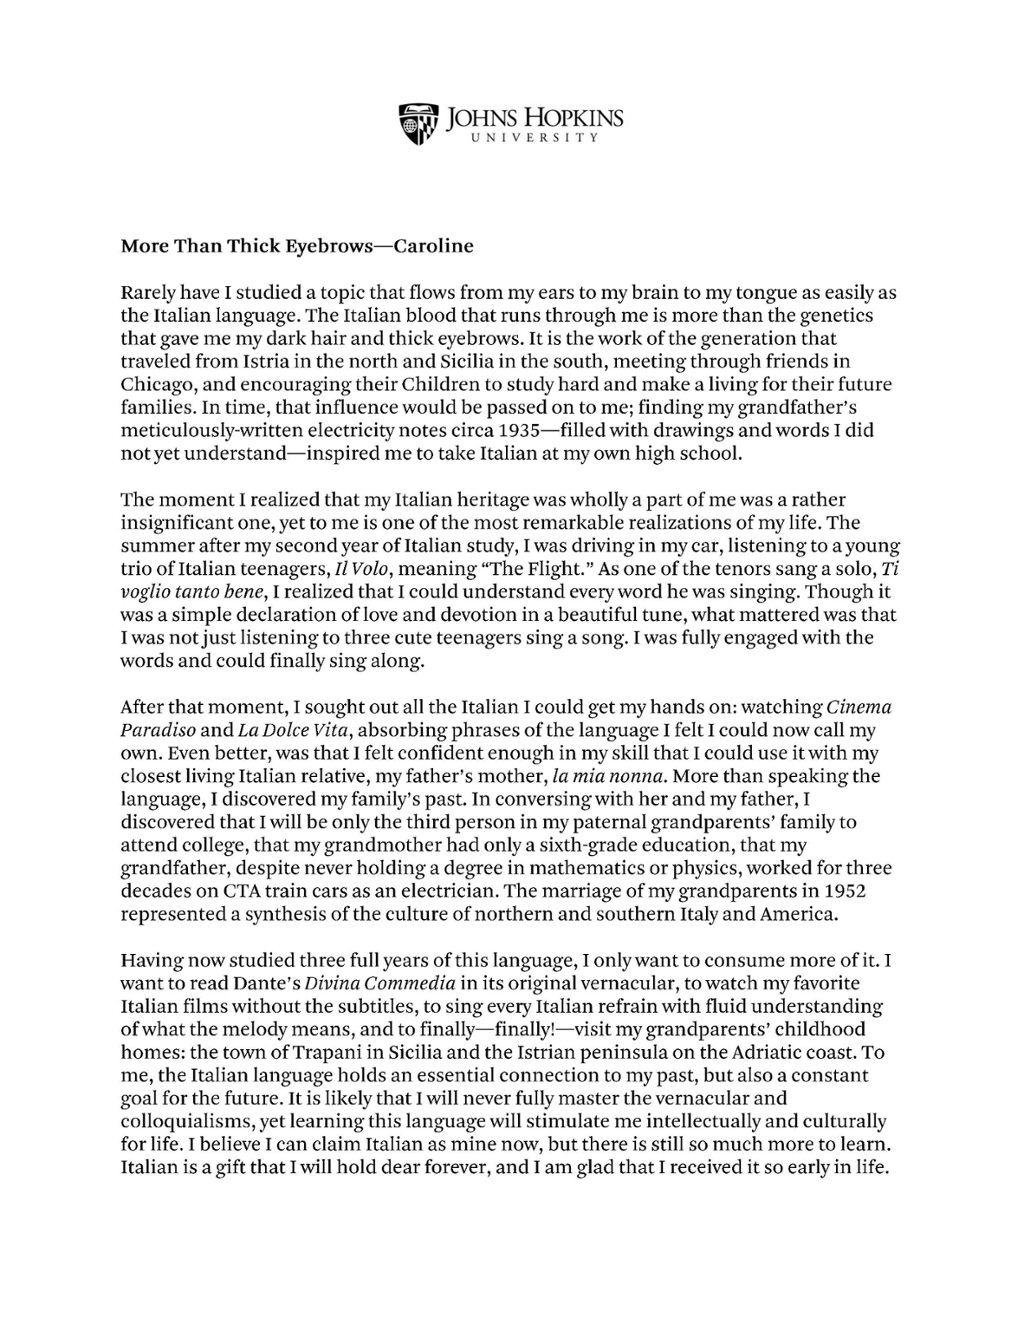 what are the characteristics of a good college student essay Essay characteristics of a good college student more about how to be a good student essay how to be a good college student essay 541 words | 3 pages.